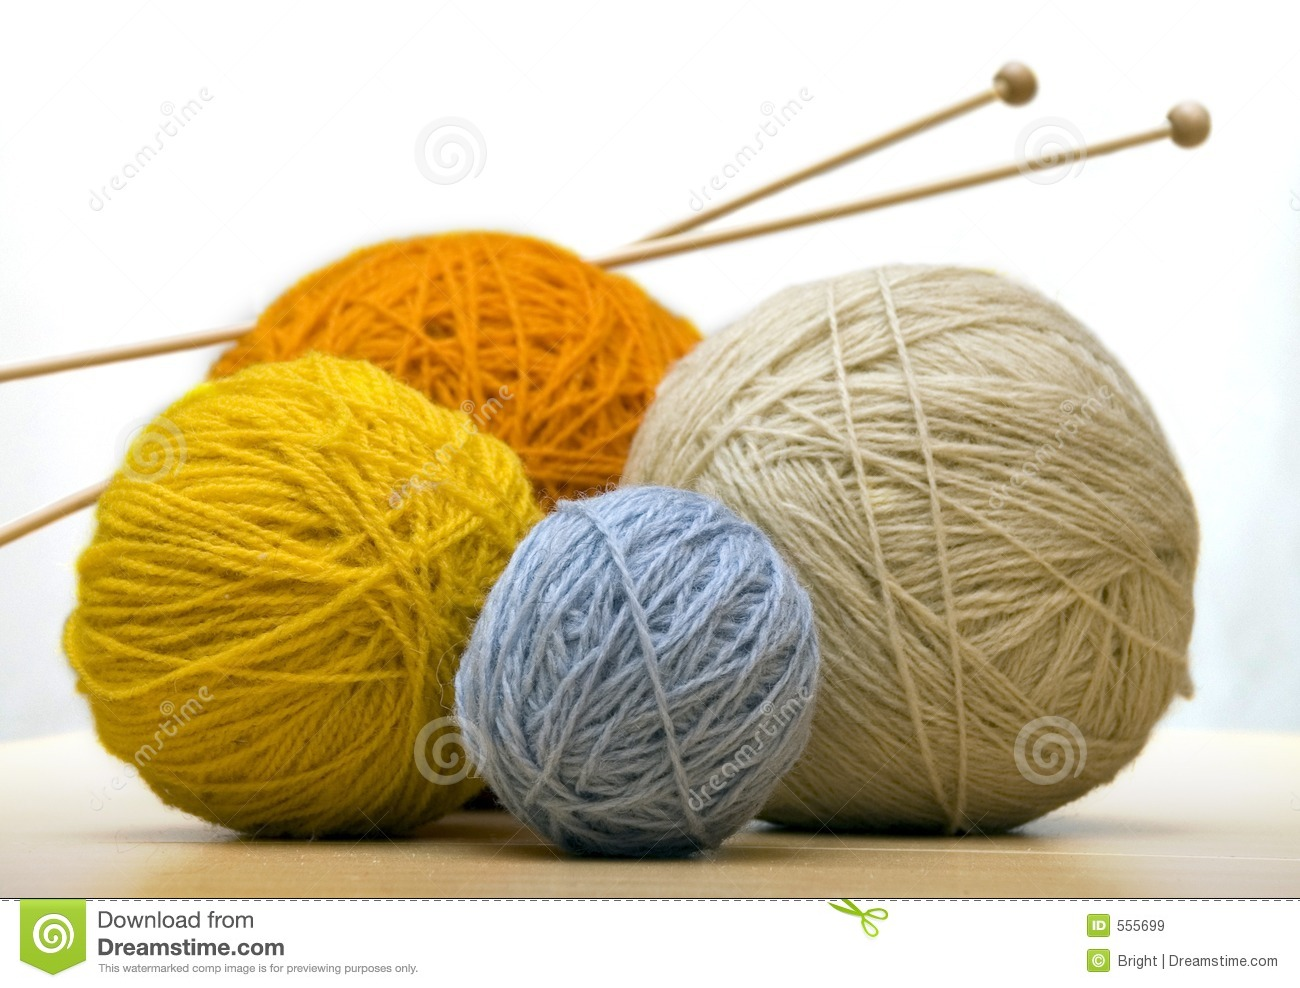 ball of yarn - photo #16